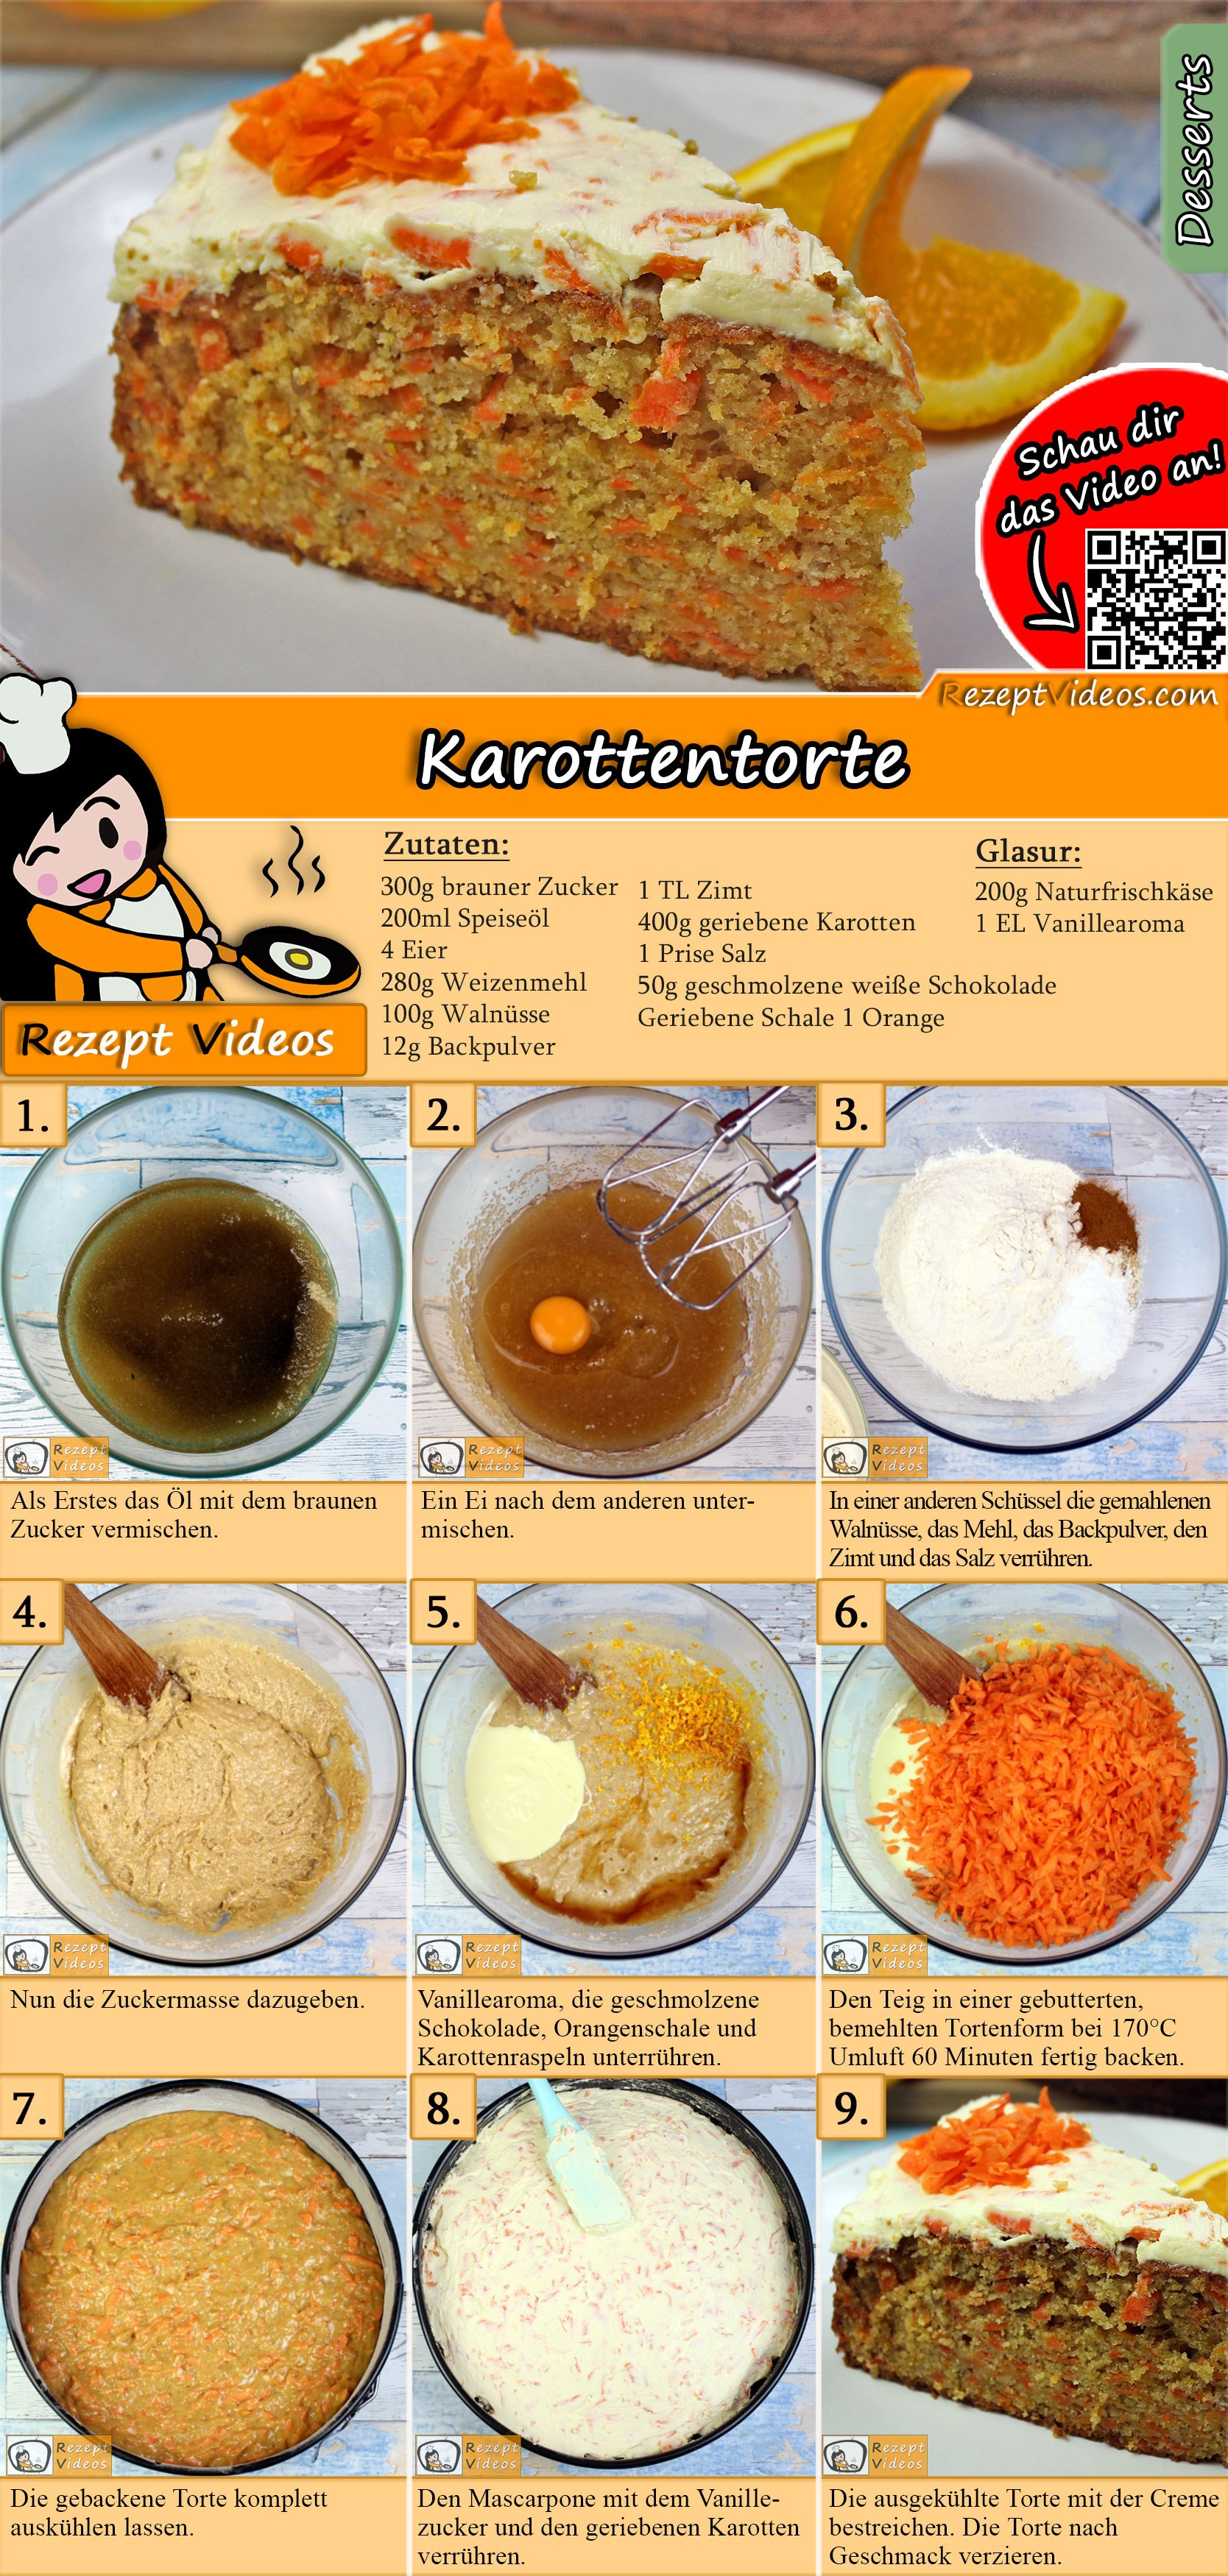 Karottentorte Rezept mit Video